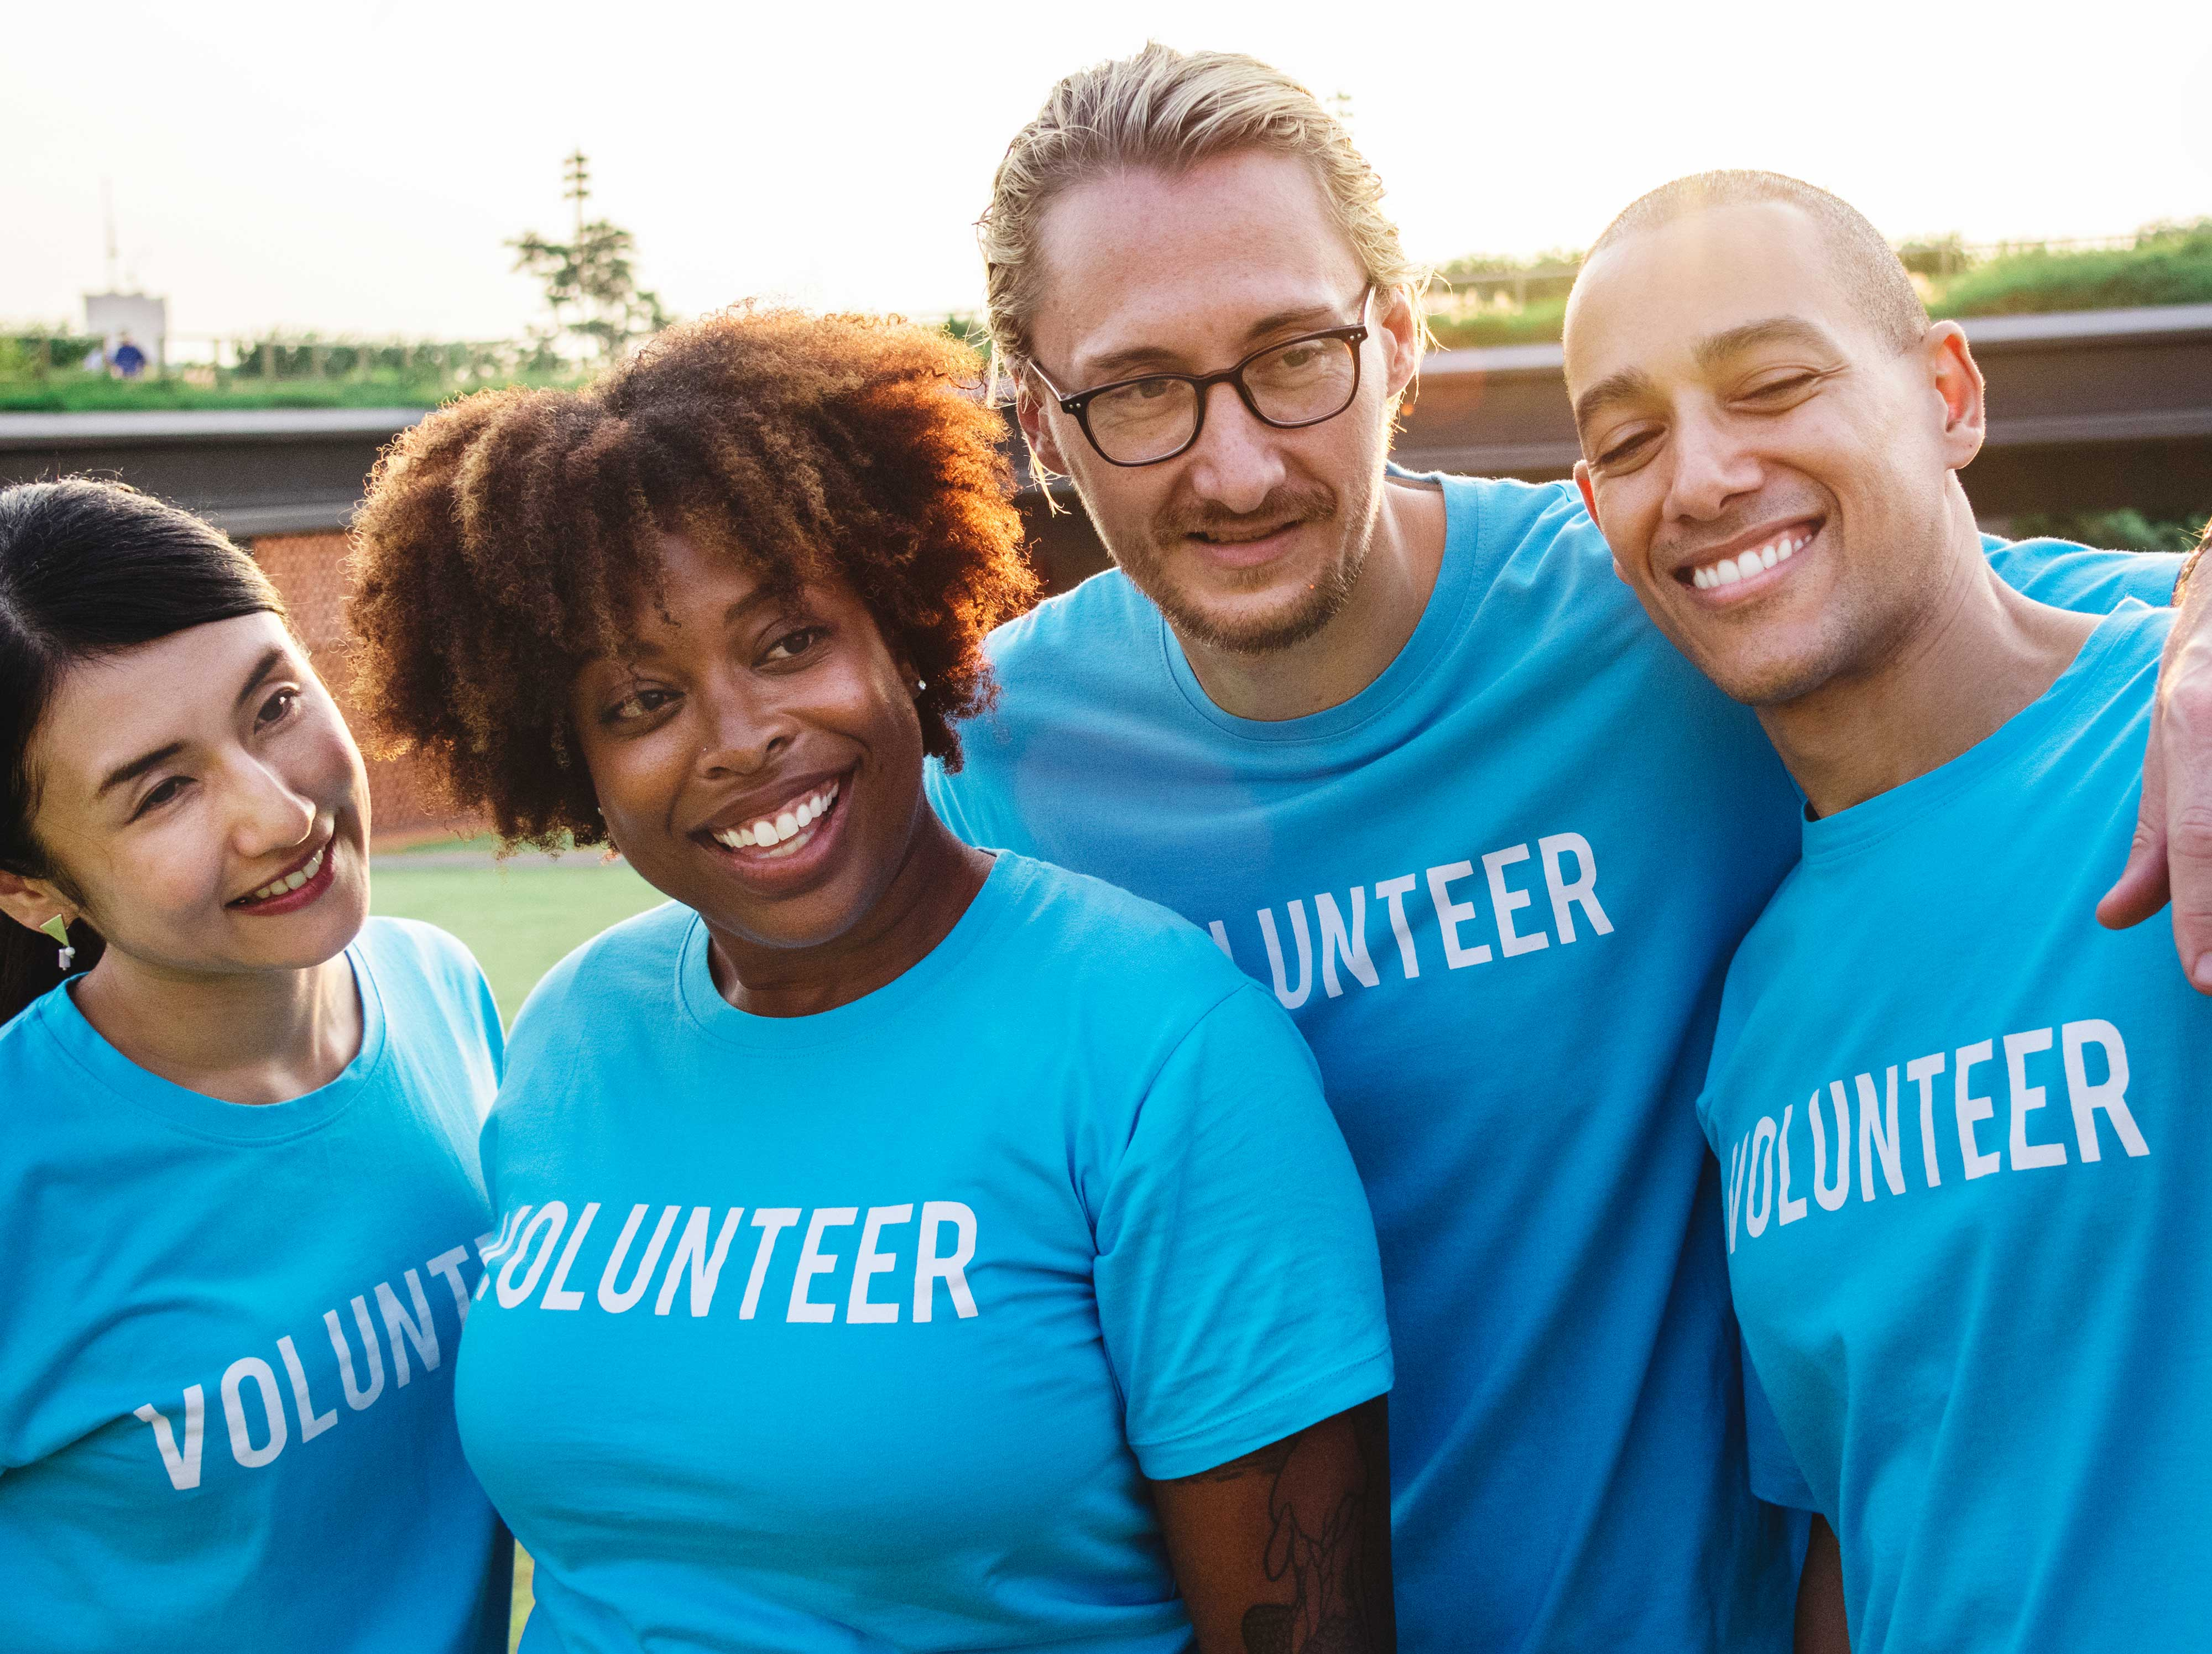 Volunteer and improve your English